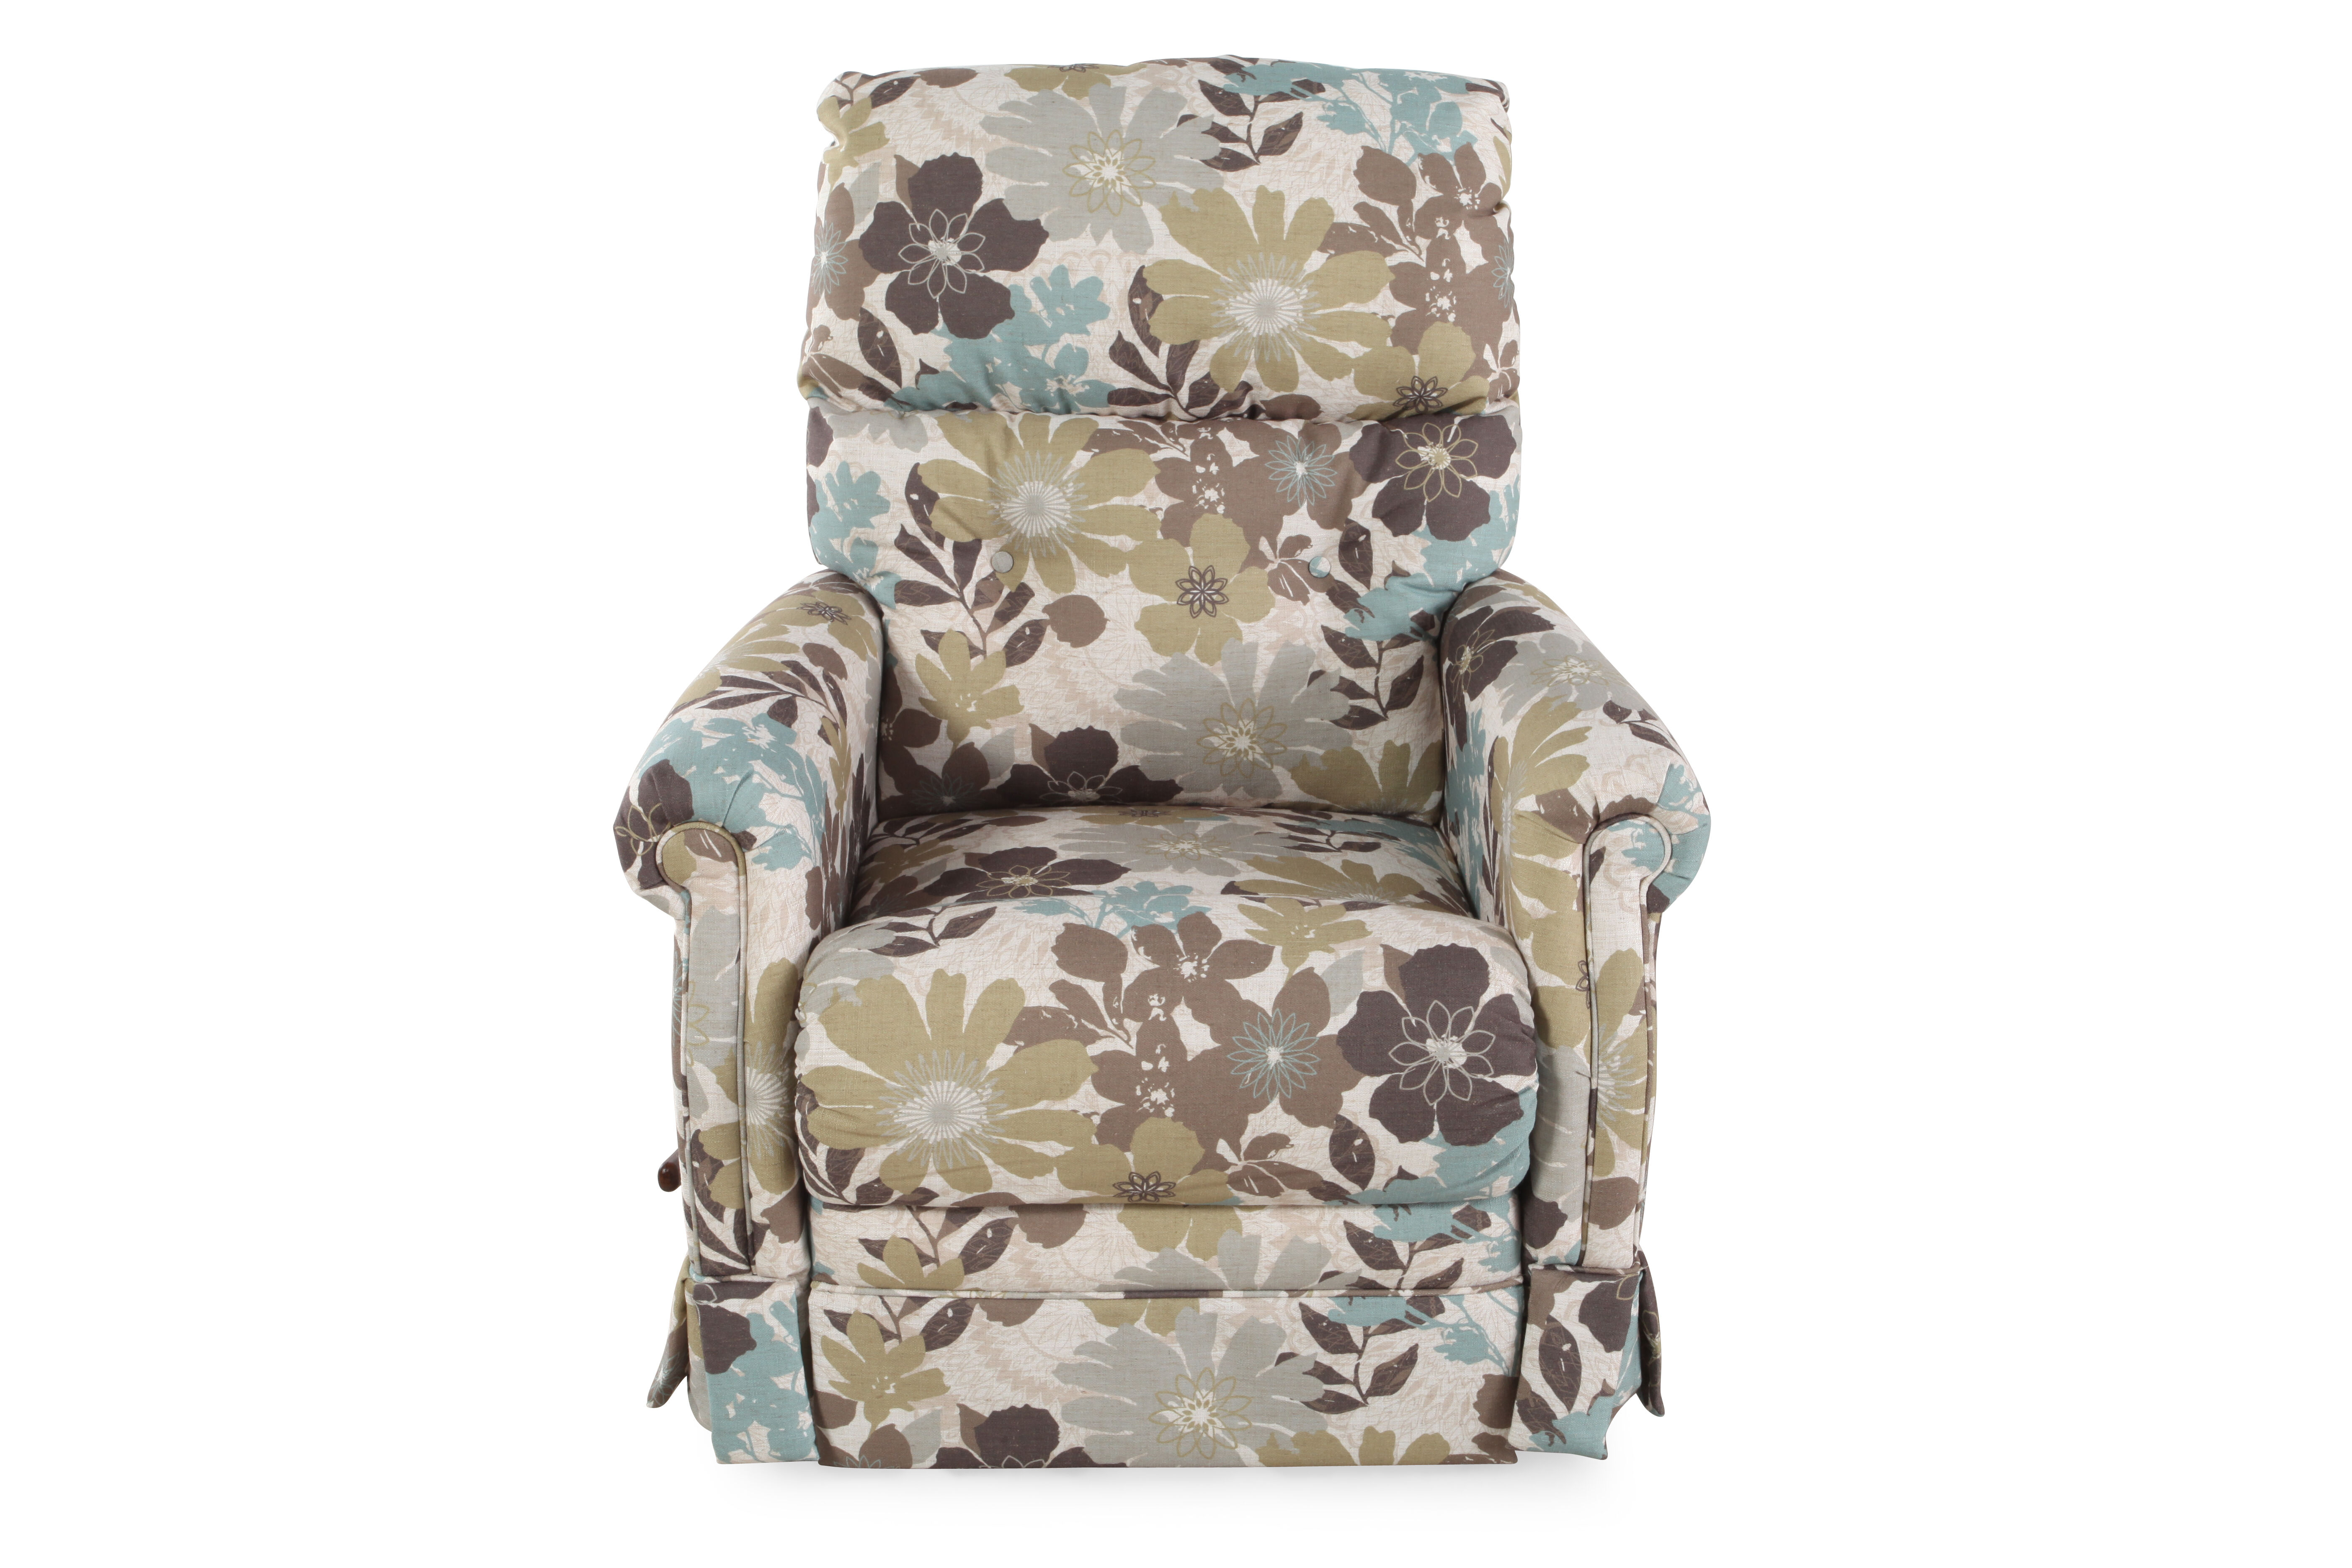 La-Z-Boy Amelia Spring Recliner  sc 1 st  Mathis Brothers : recliner spring - islam-shia.org